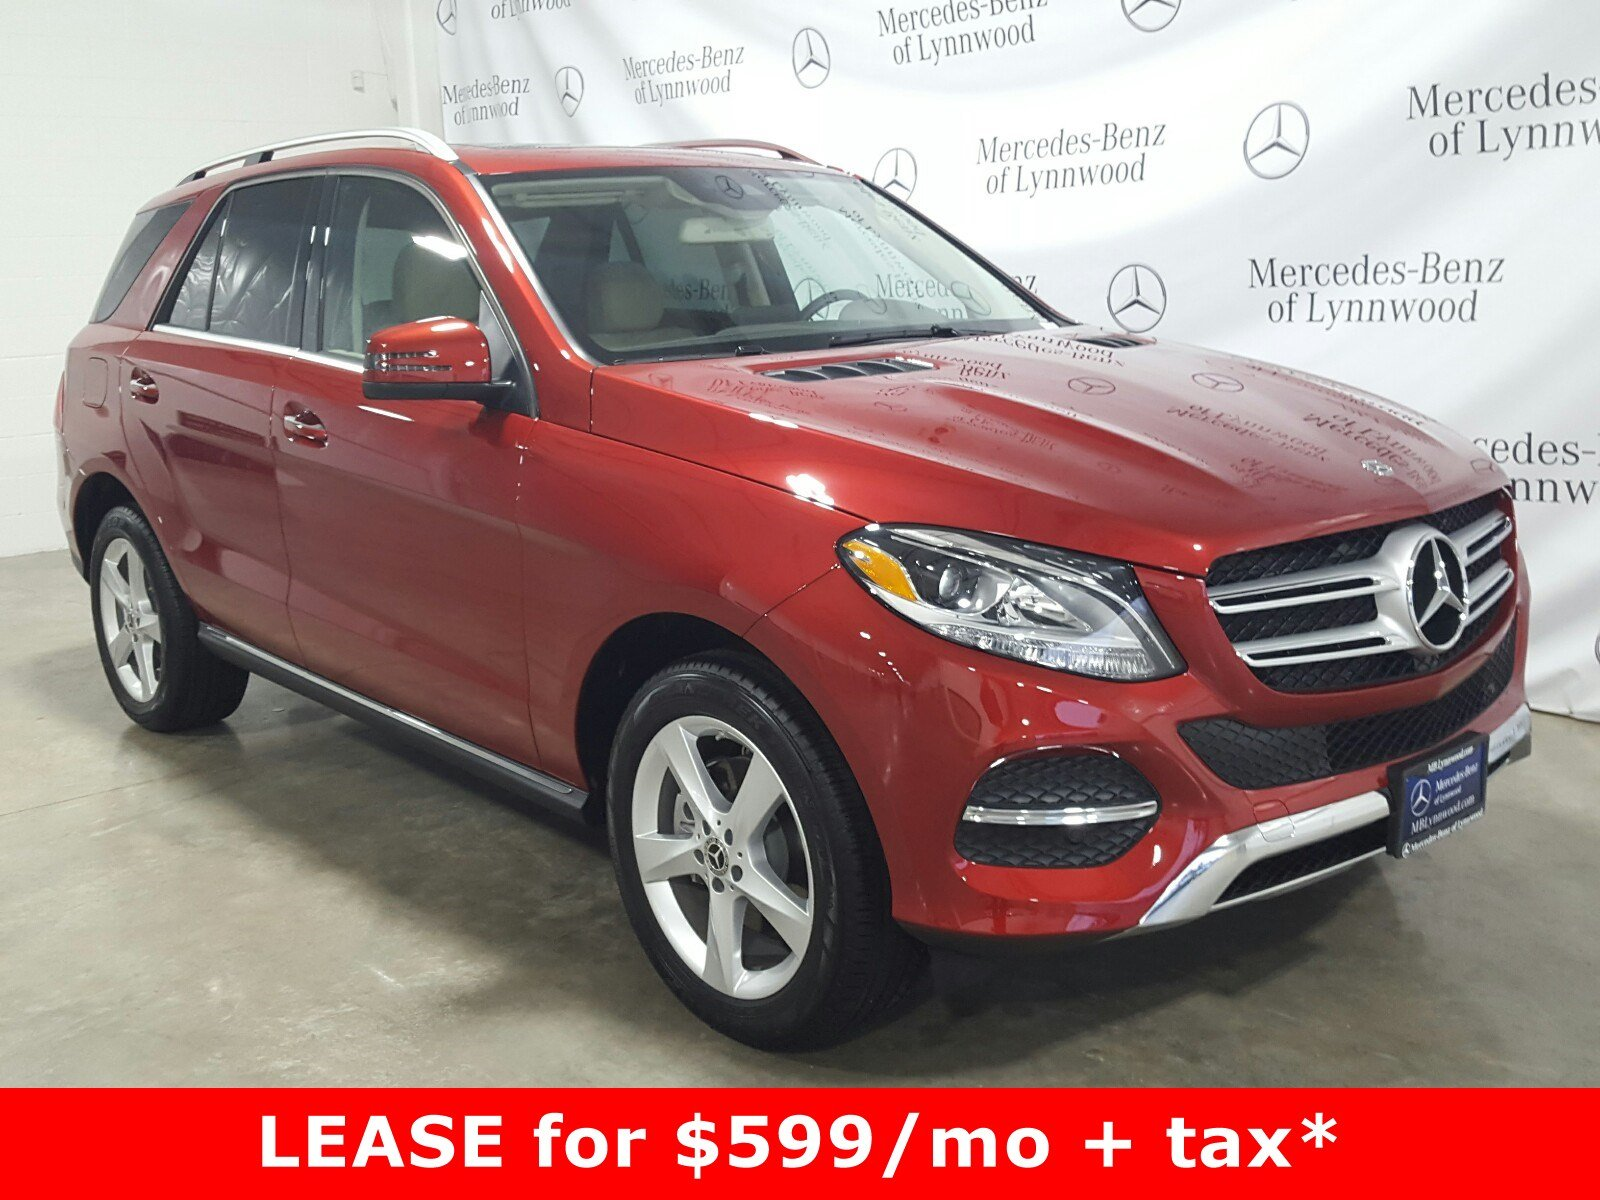 Pre Owned 2018 Mercedes Benz GLE GLE 350 4MATIC SUV in Lynnwood